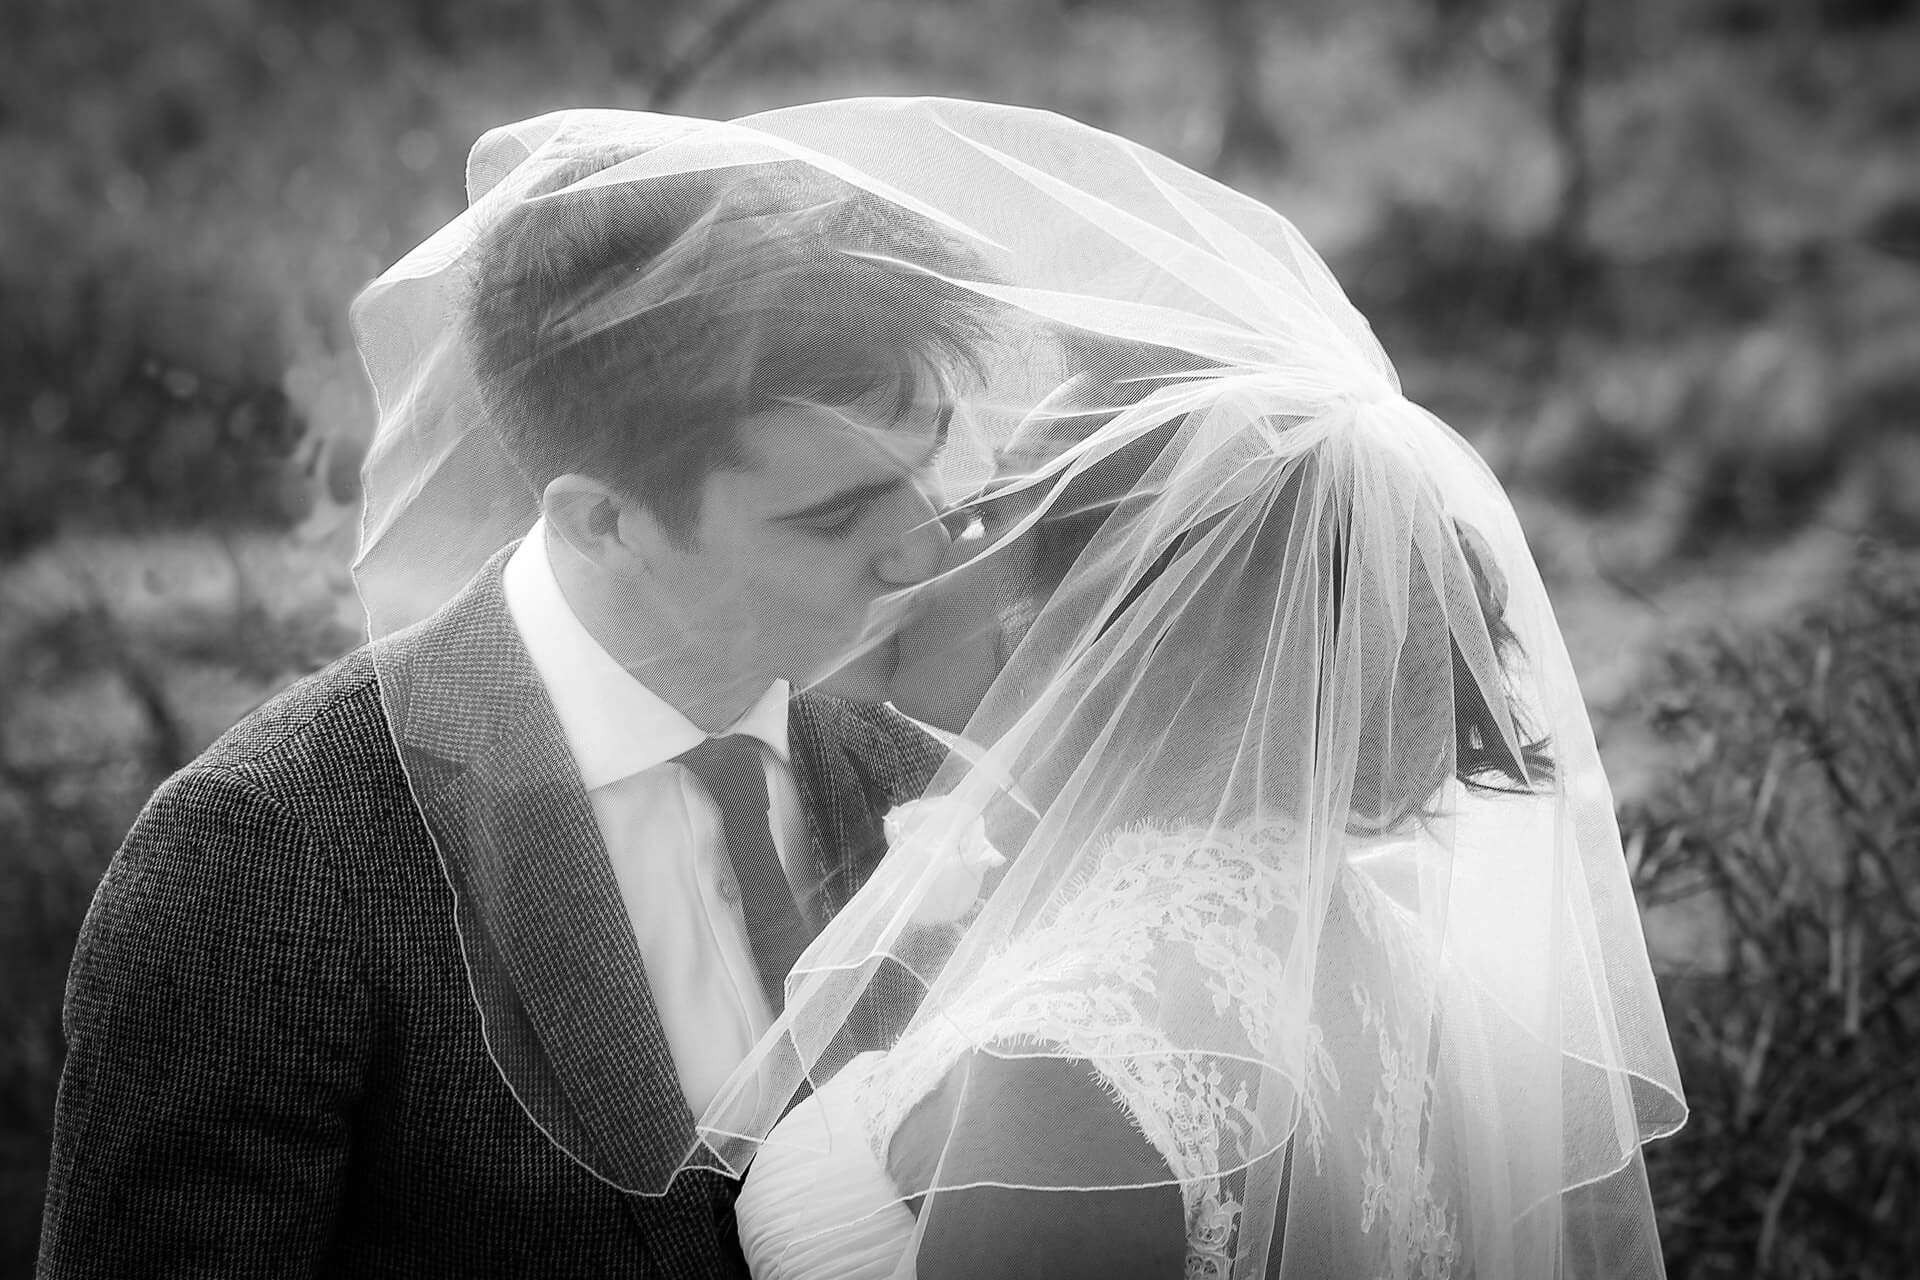 Bride and groom kiss under her veil at Waverley abbey near Farnham